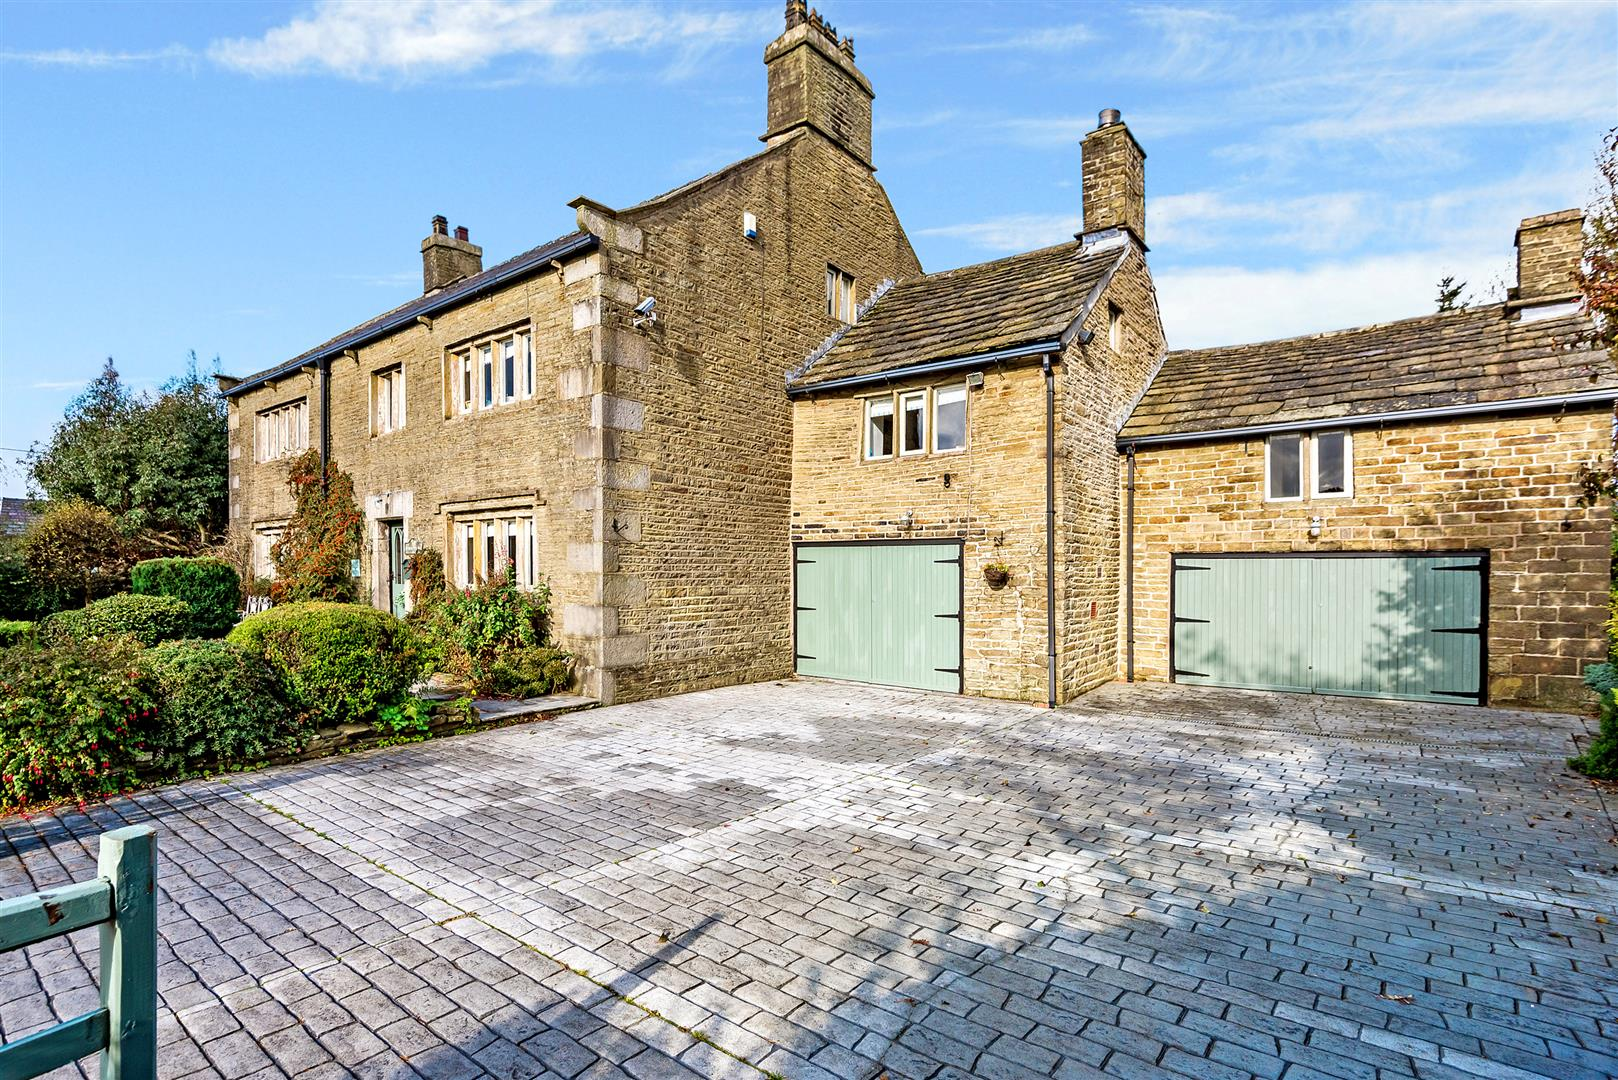 5 bedroom house Sale Agreed in Bolton - Main Image.